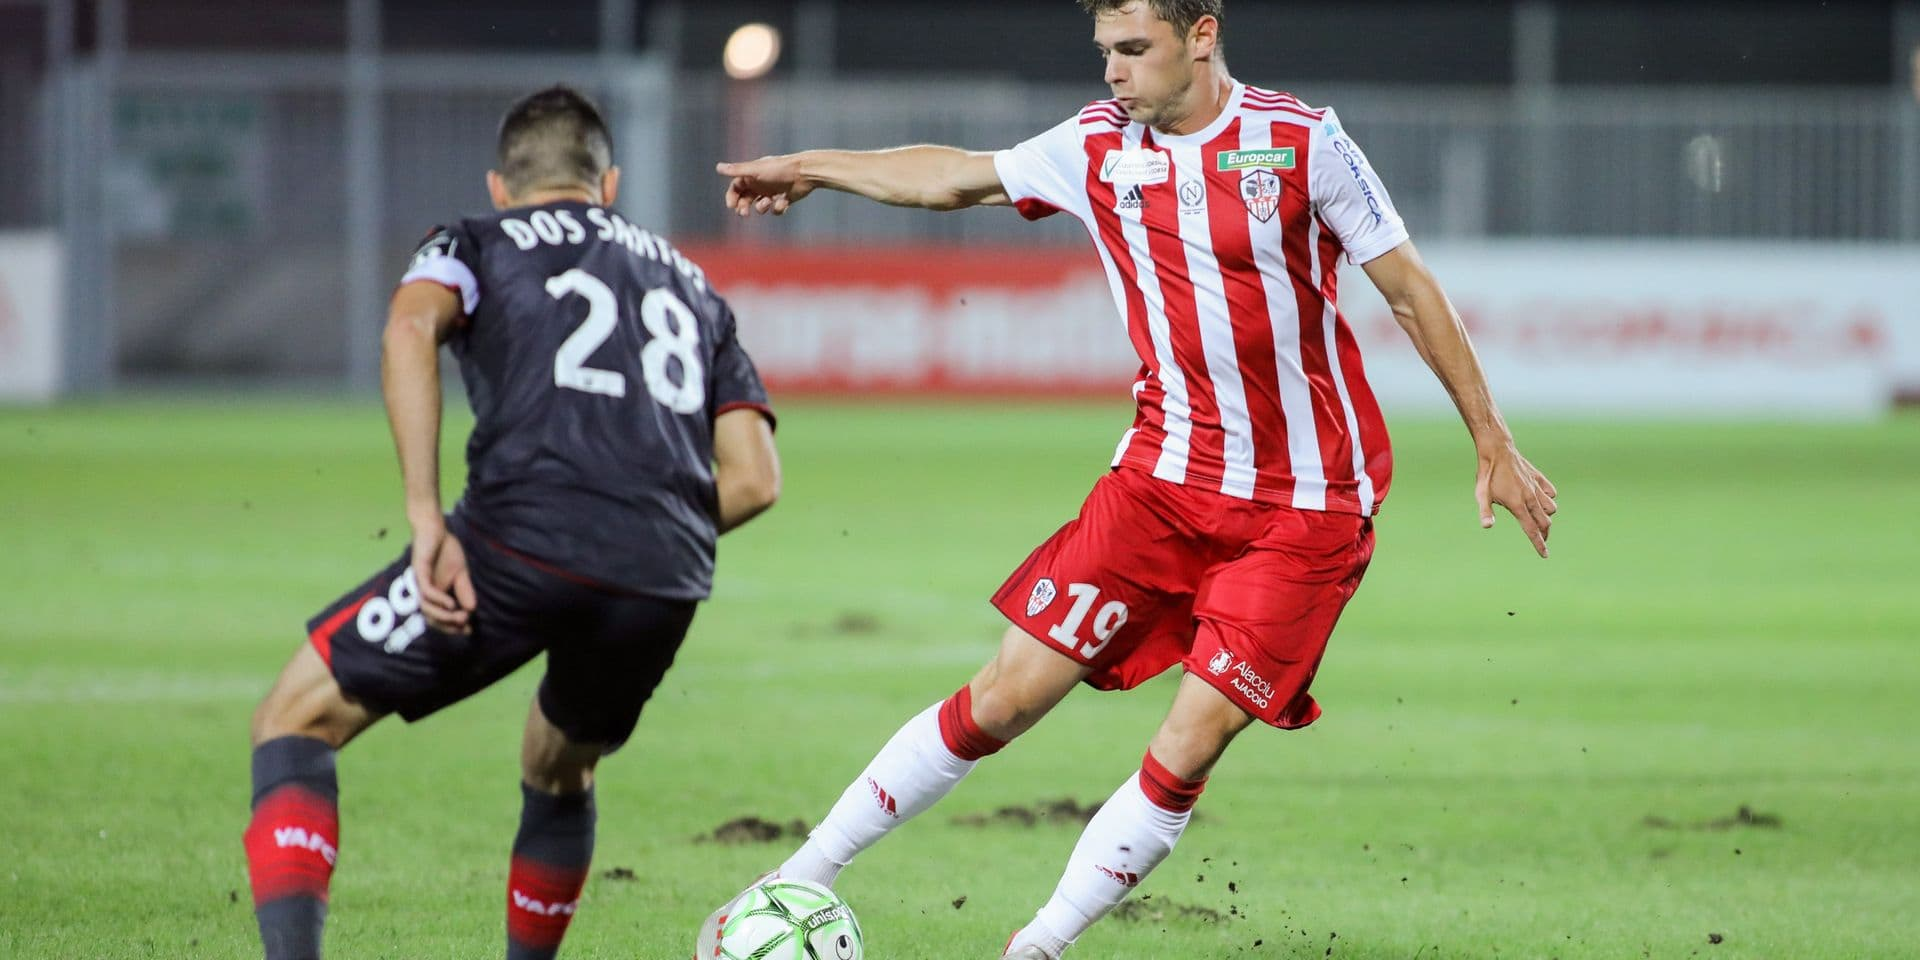 Athletic Club ajaccien v Valenciennes Football Club - Ligue 2